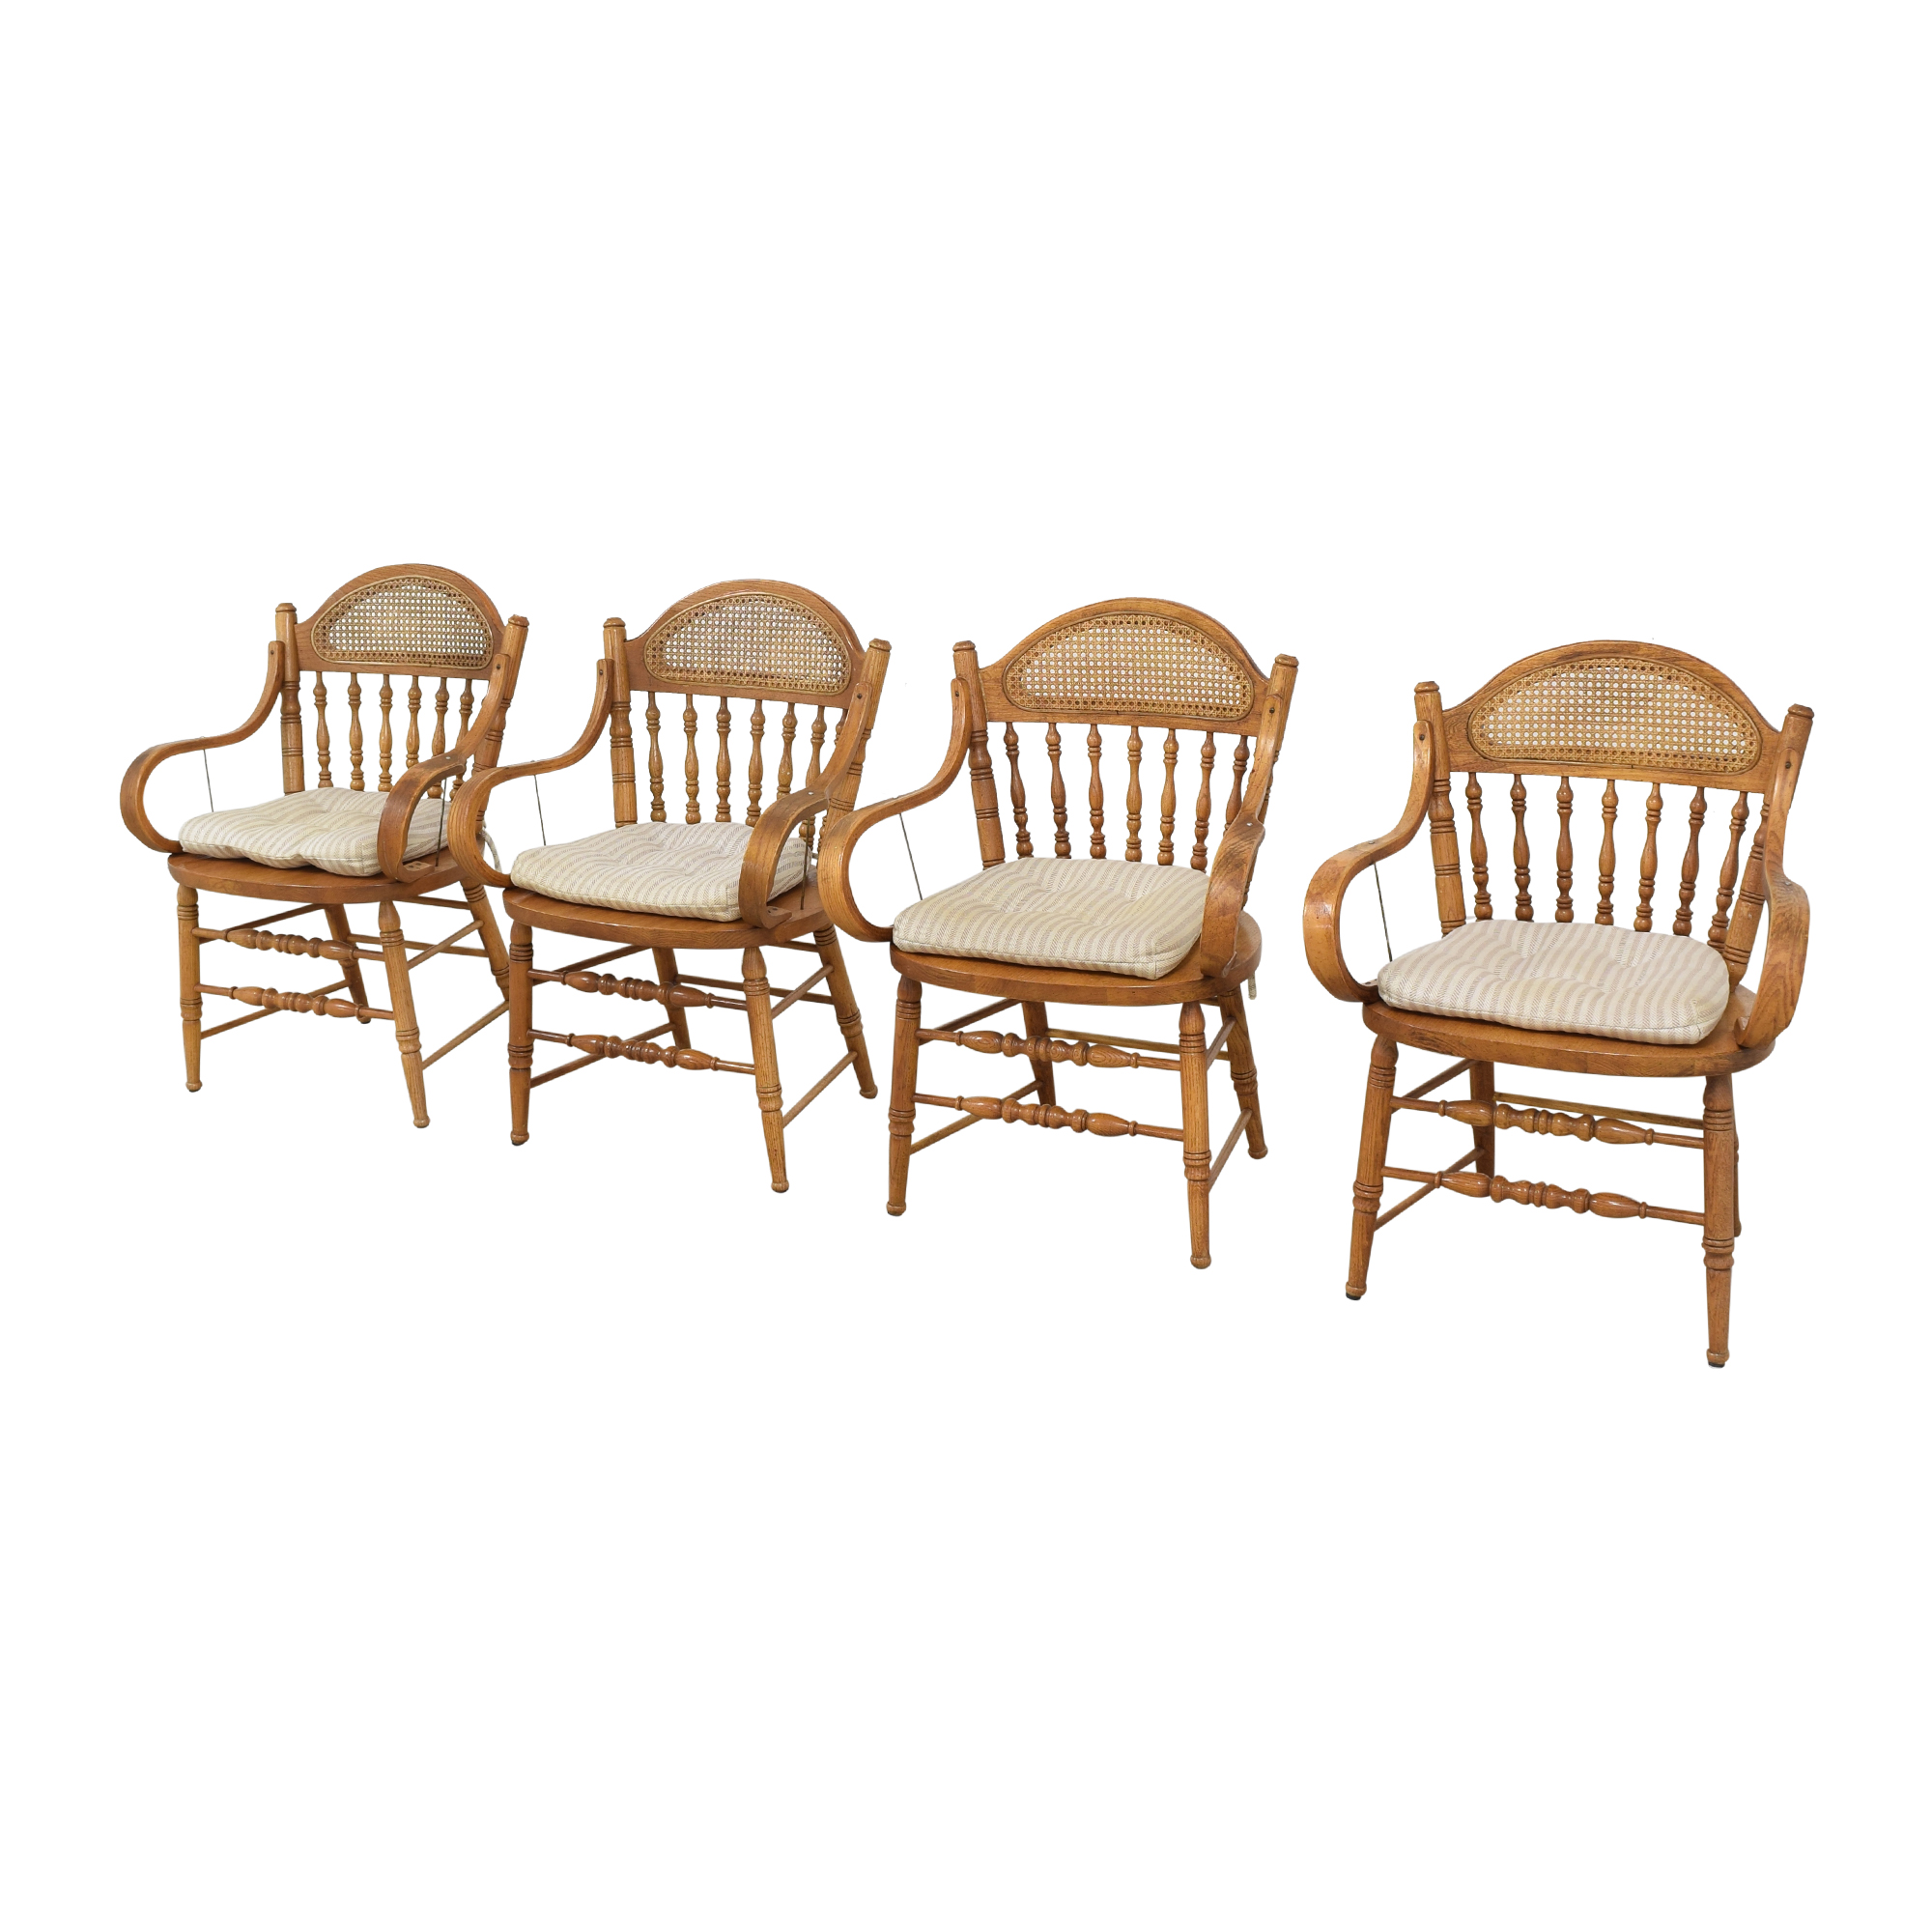 Oak Dining Arm Chairs with Cushions second hand